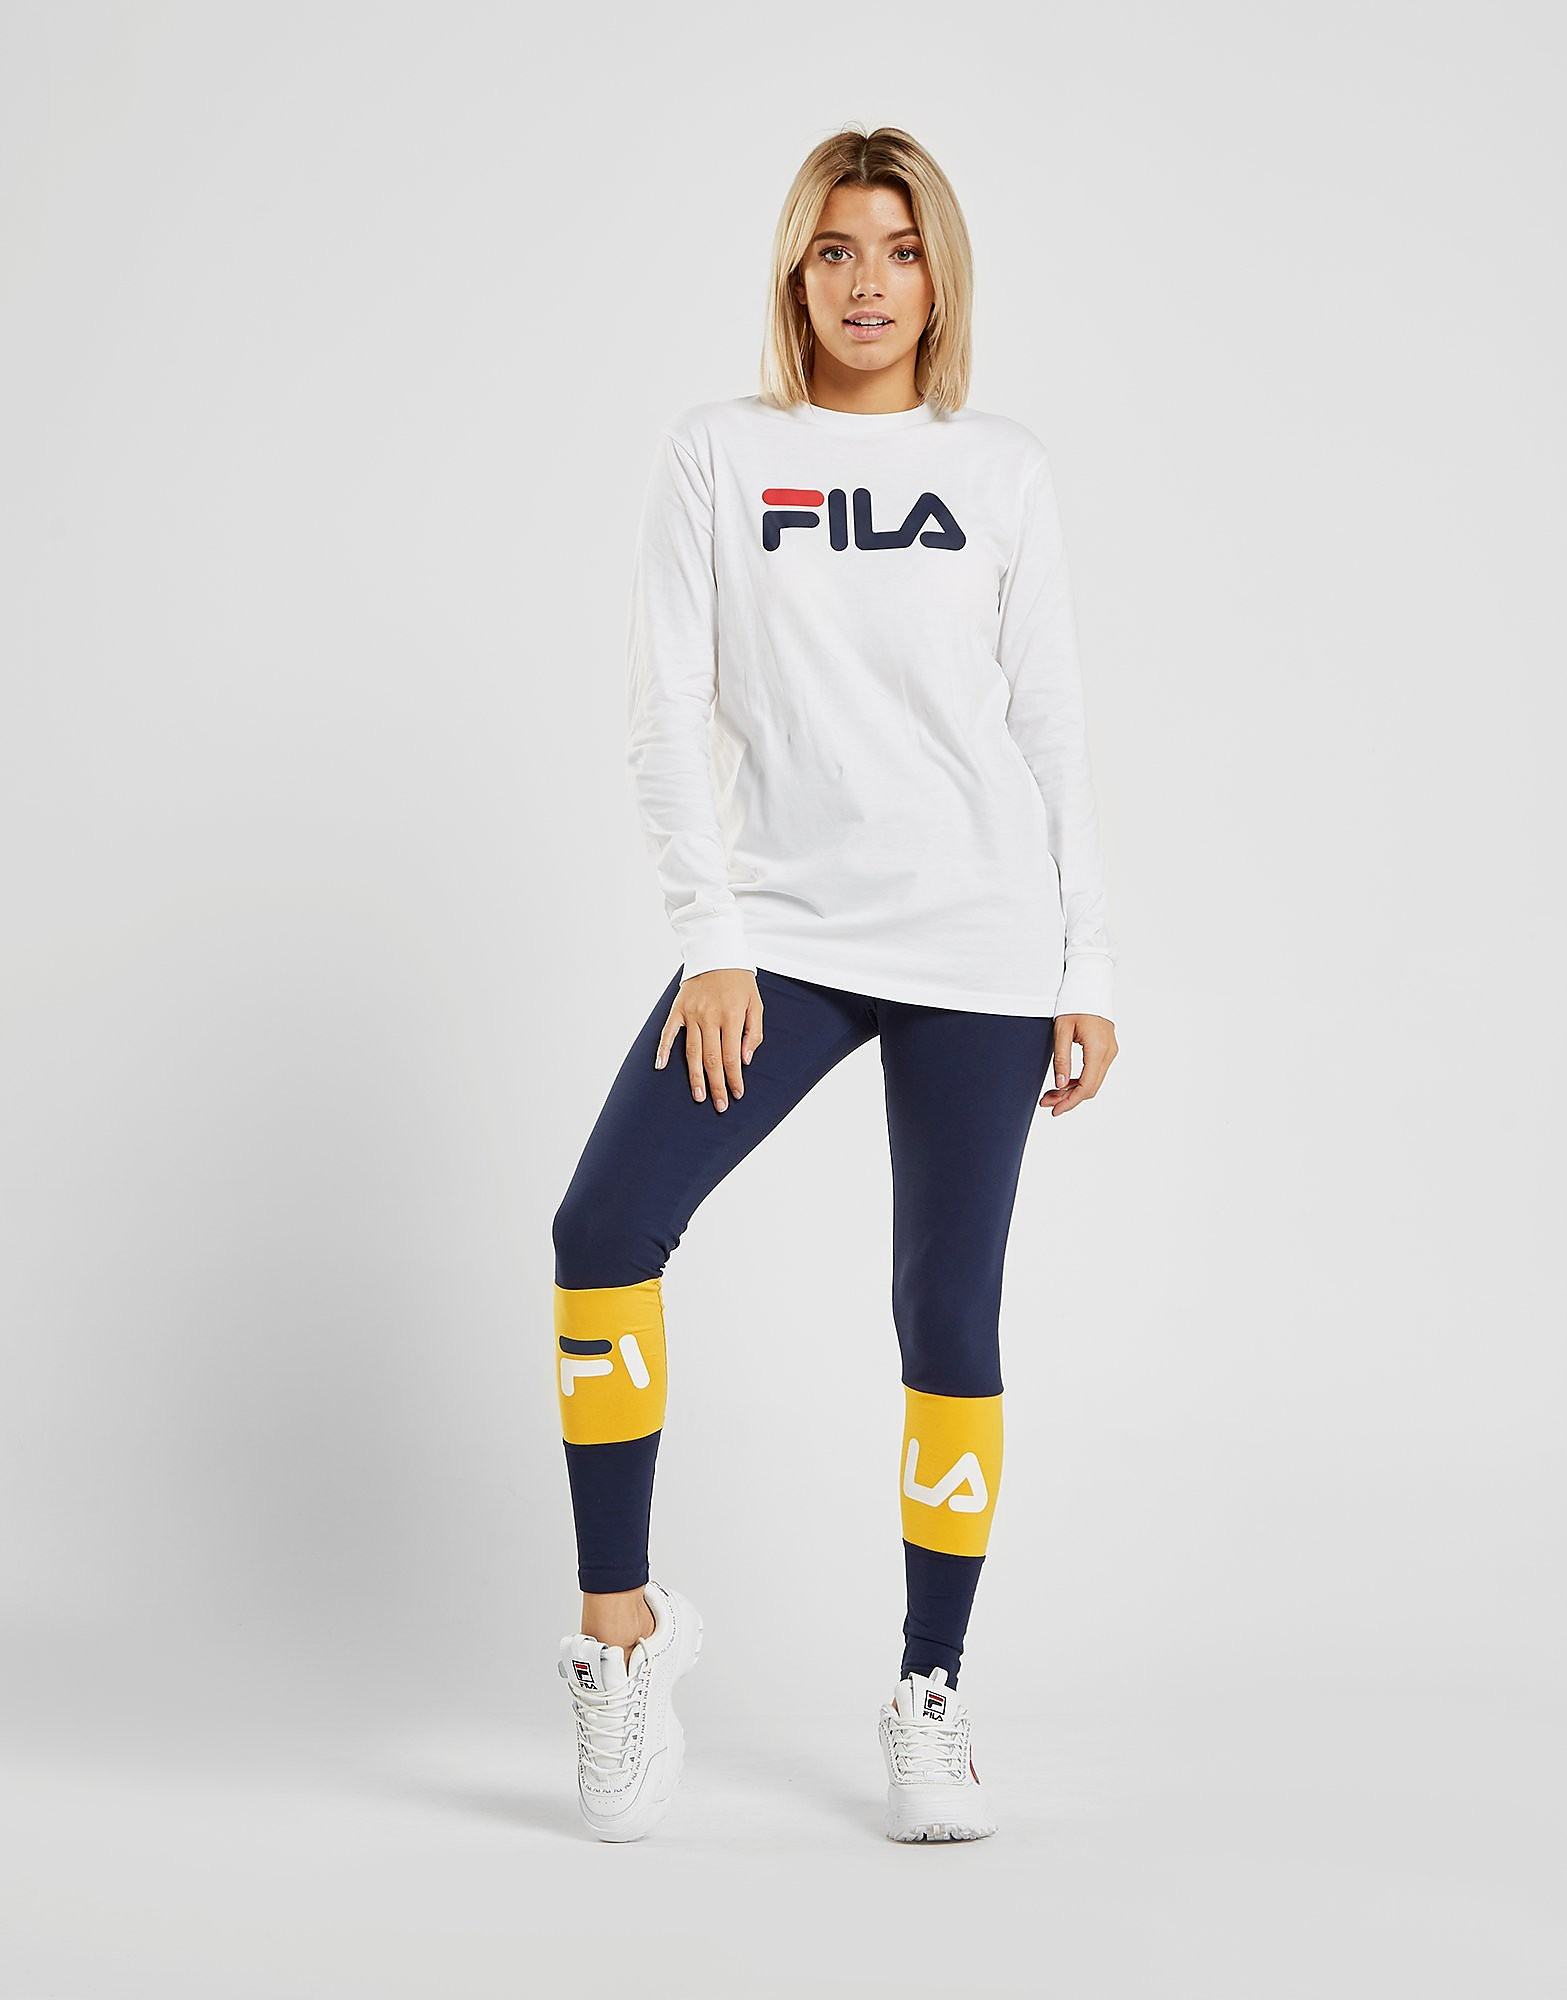 Fila Long Sleeve Boyfriend T-Shirt